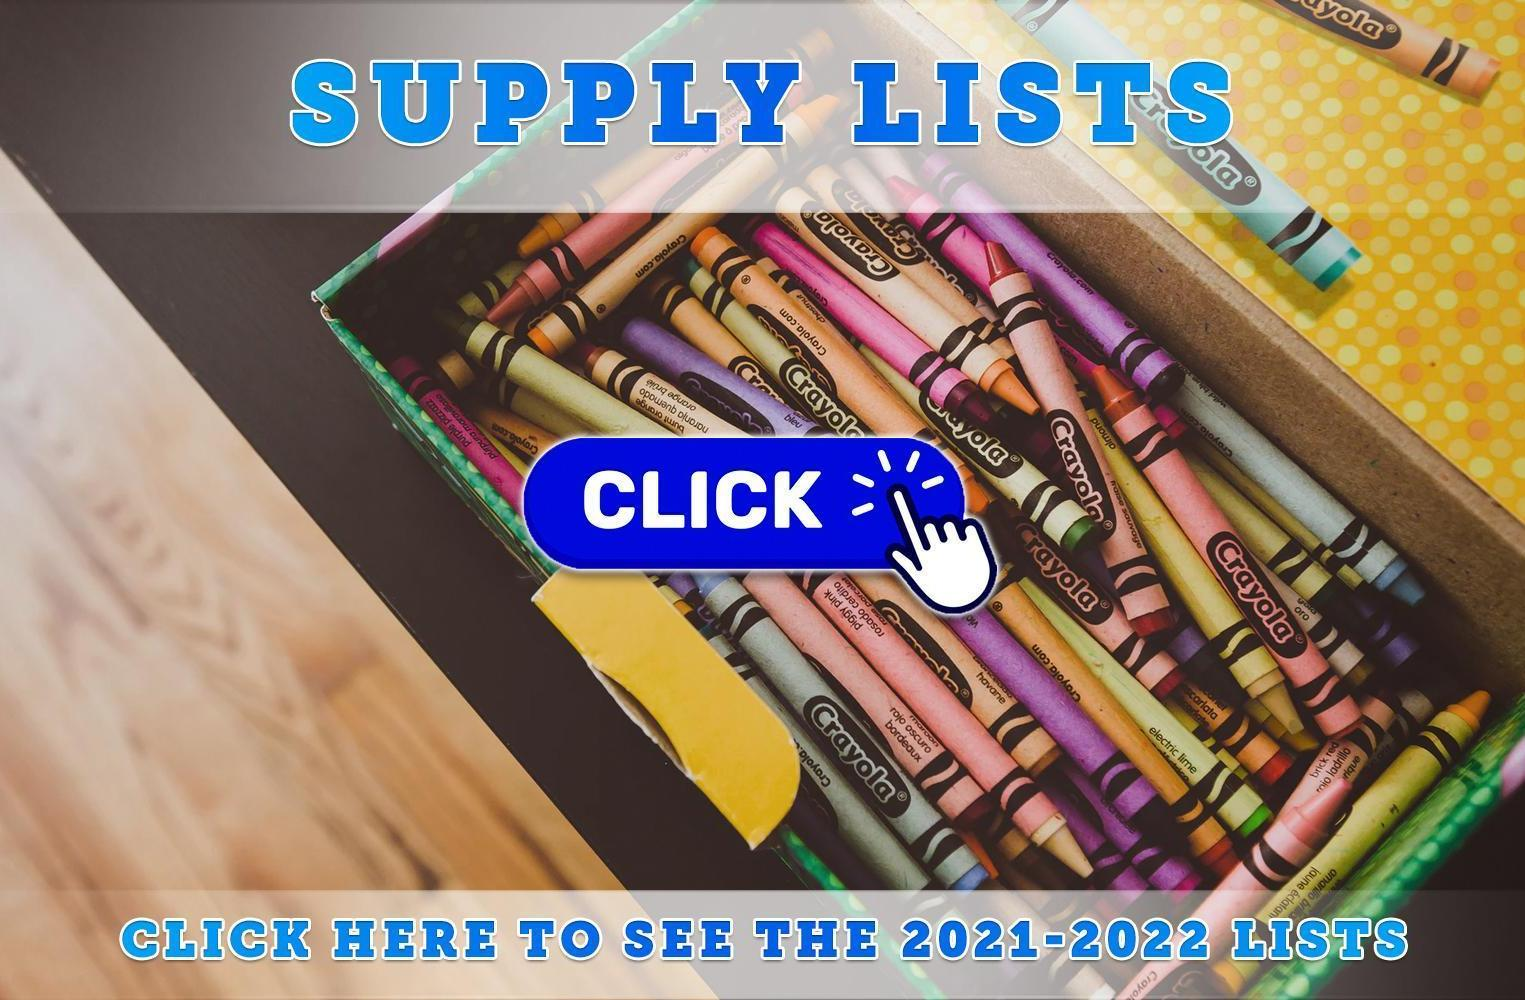 Suggested Student Supply List (2021-2022)